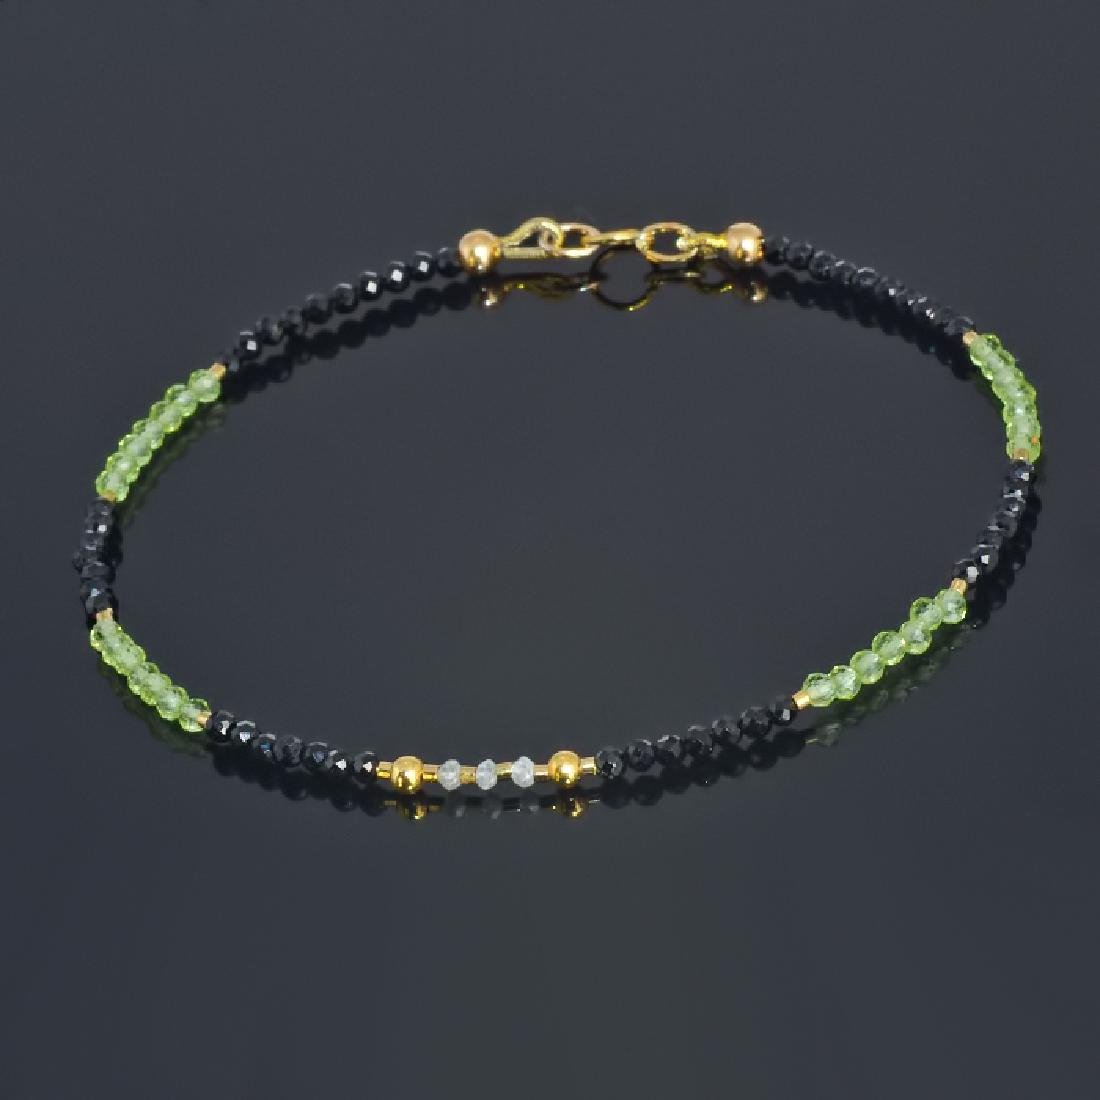 Spinel and Peridot bracelet with Diamonds 0.2 carat